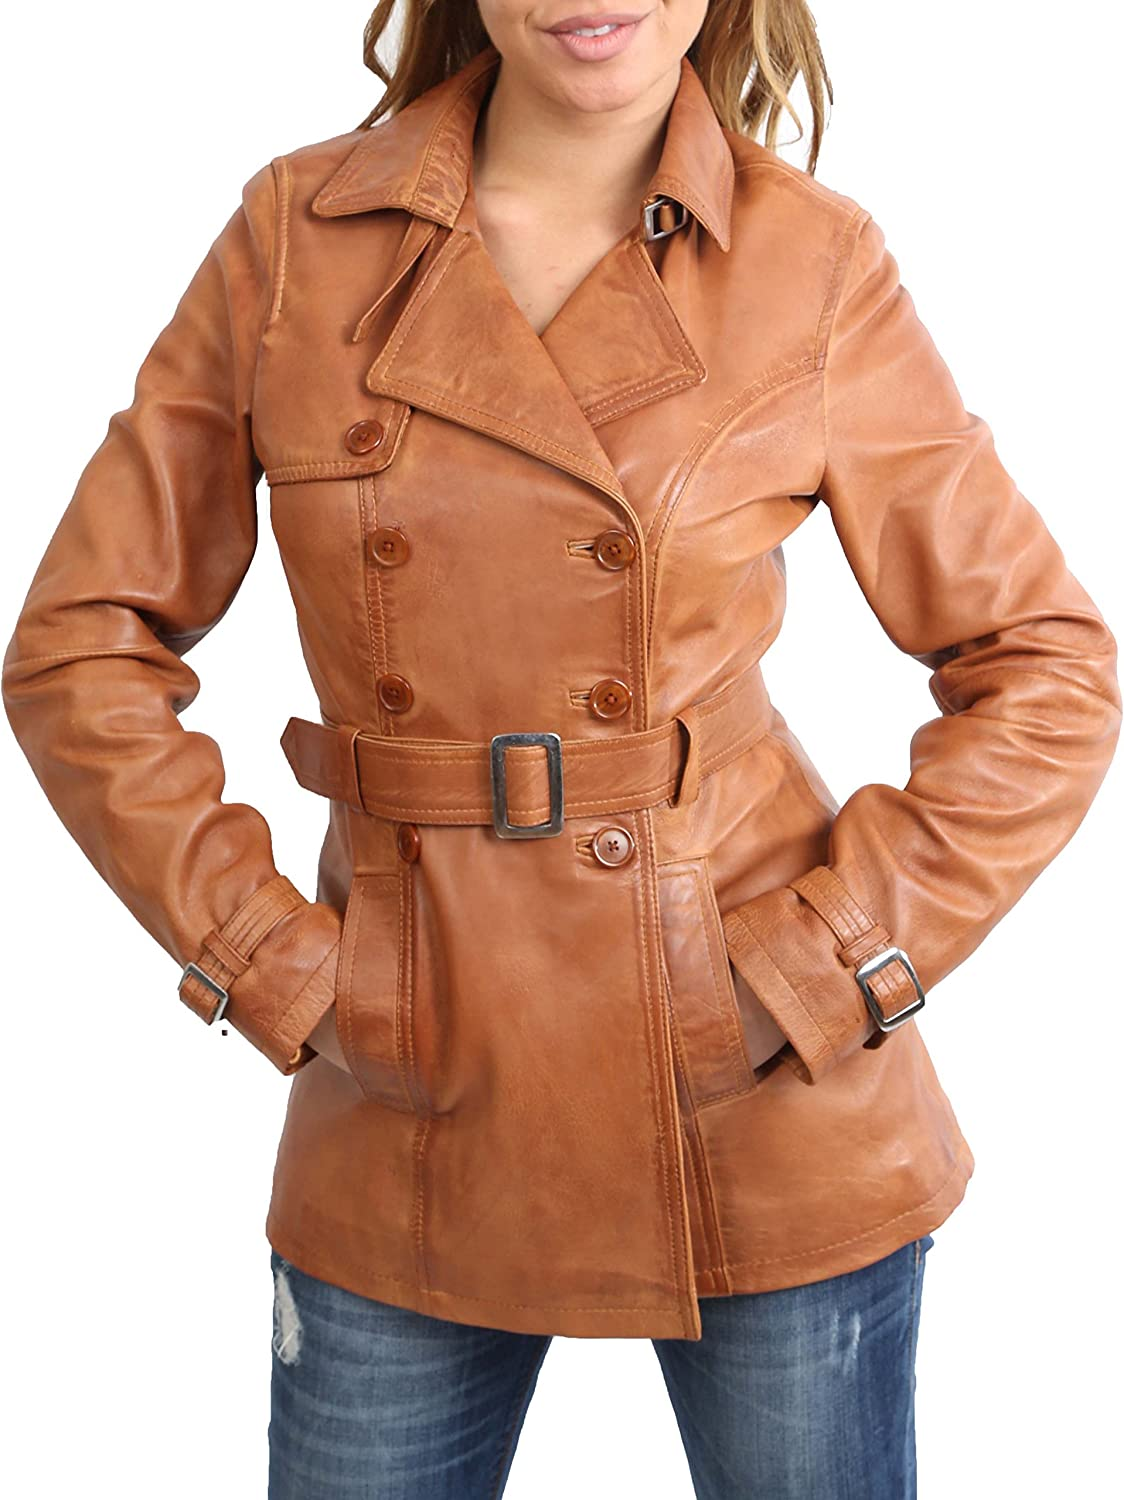 Ladies Genuine Leather Jacket Womens Double Breasted Trench Coat Olivia Tan